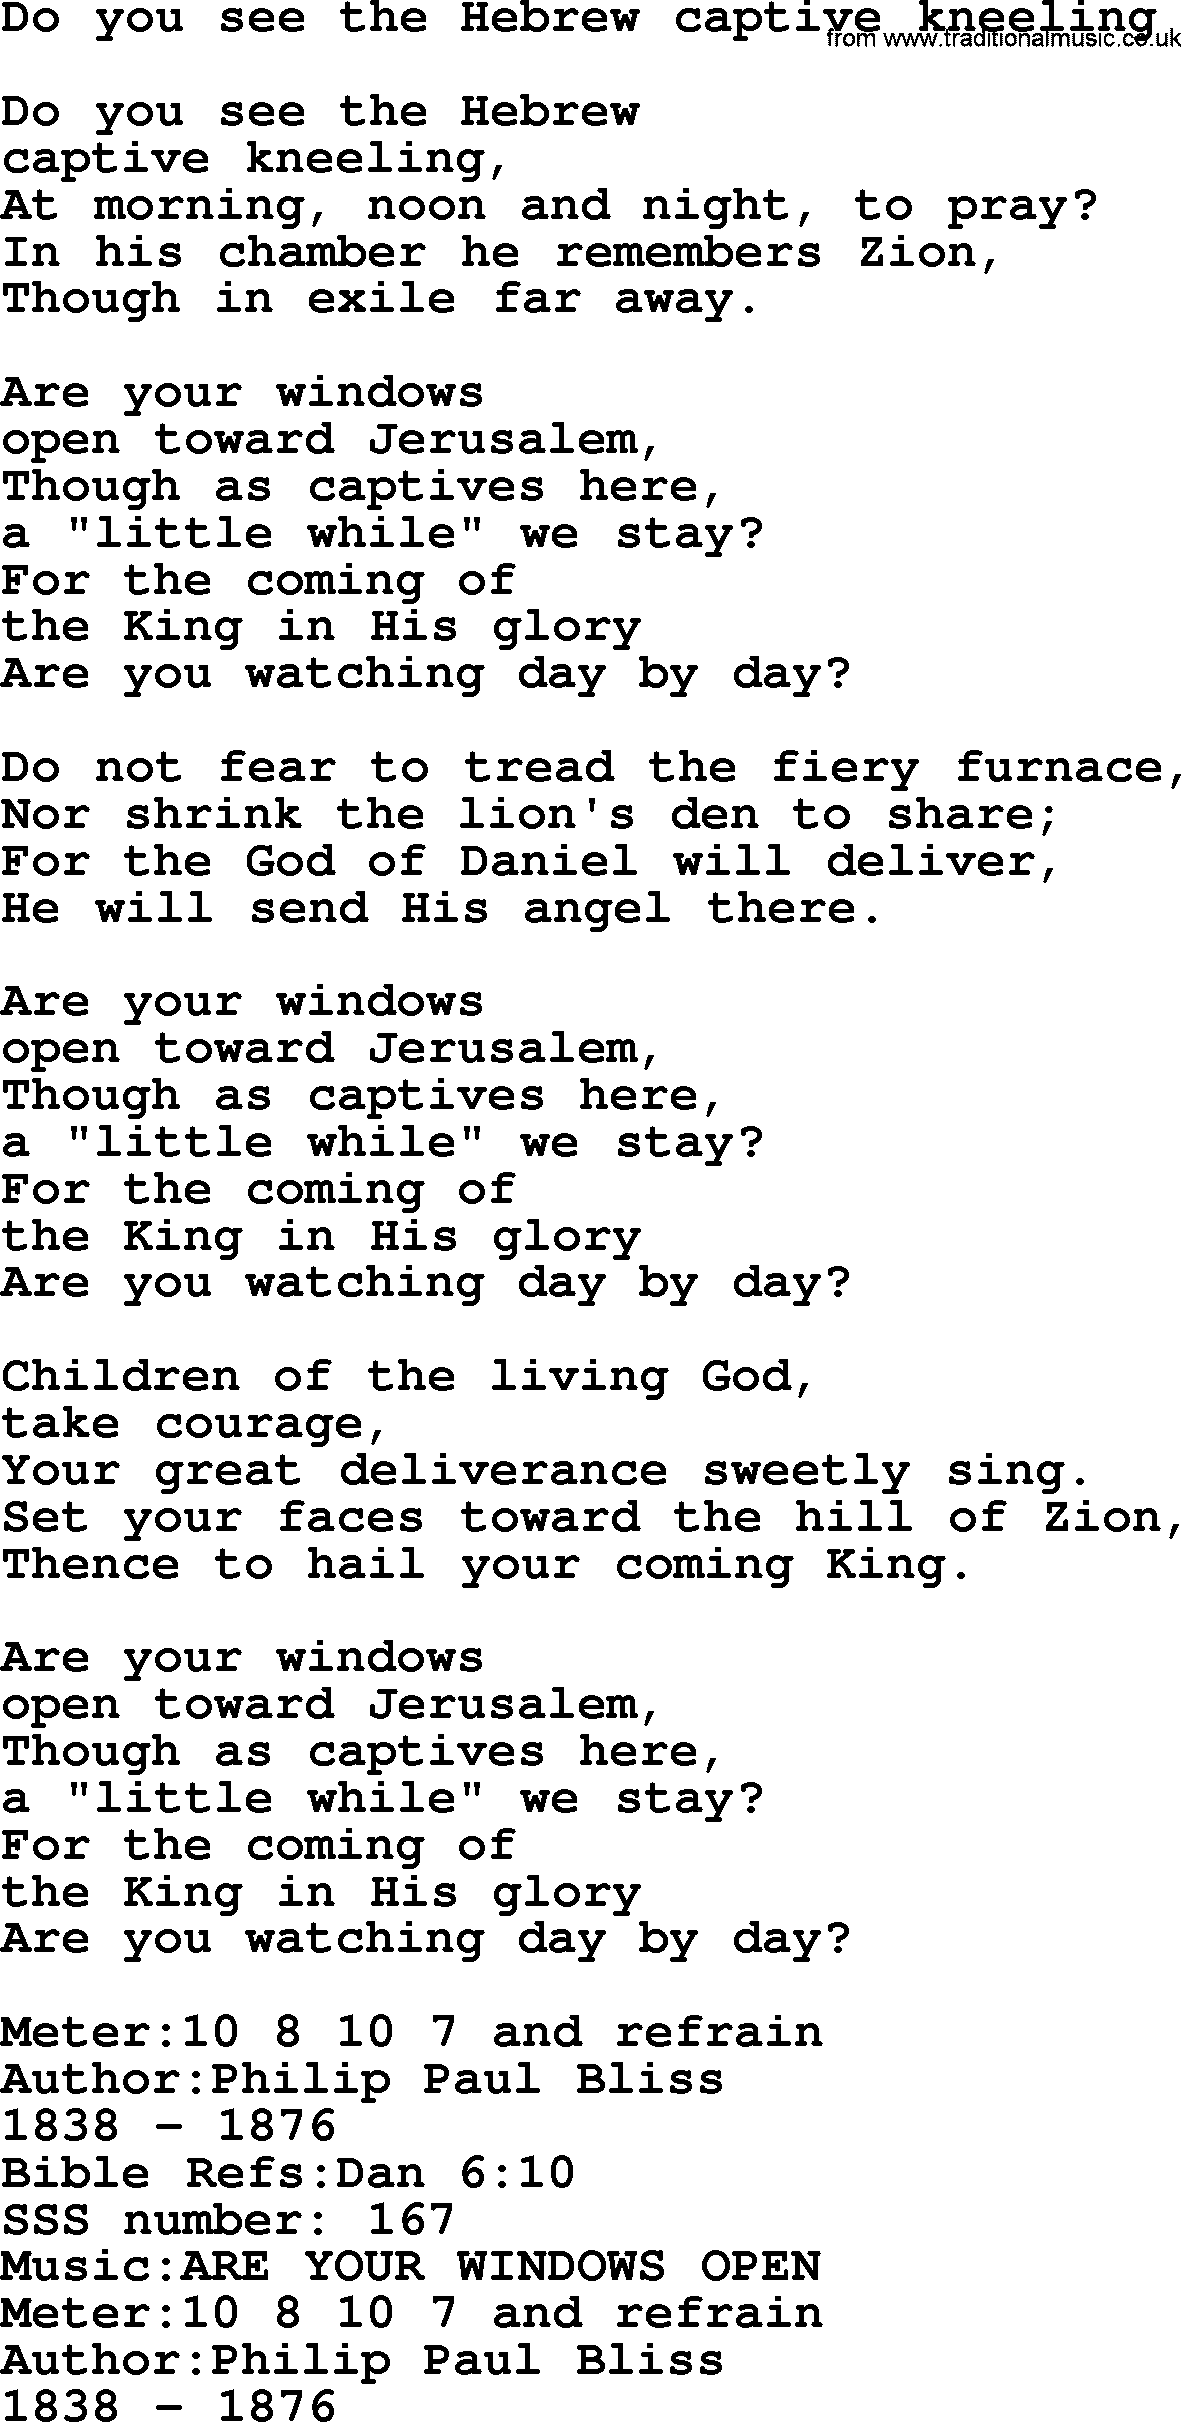 Sacred Songs and Solos complete(words version), Song: Do You See The